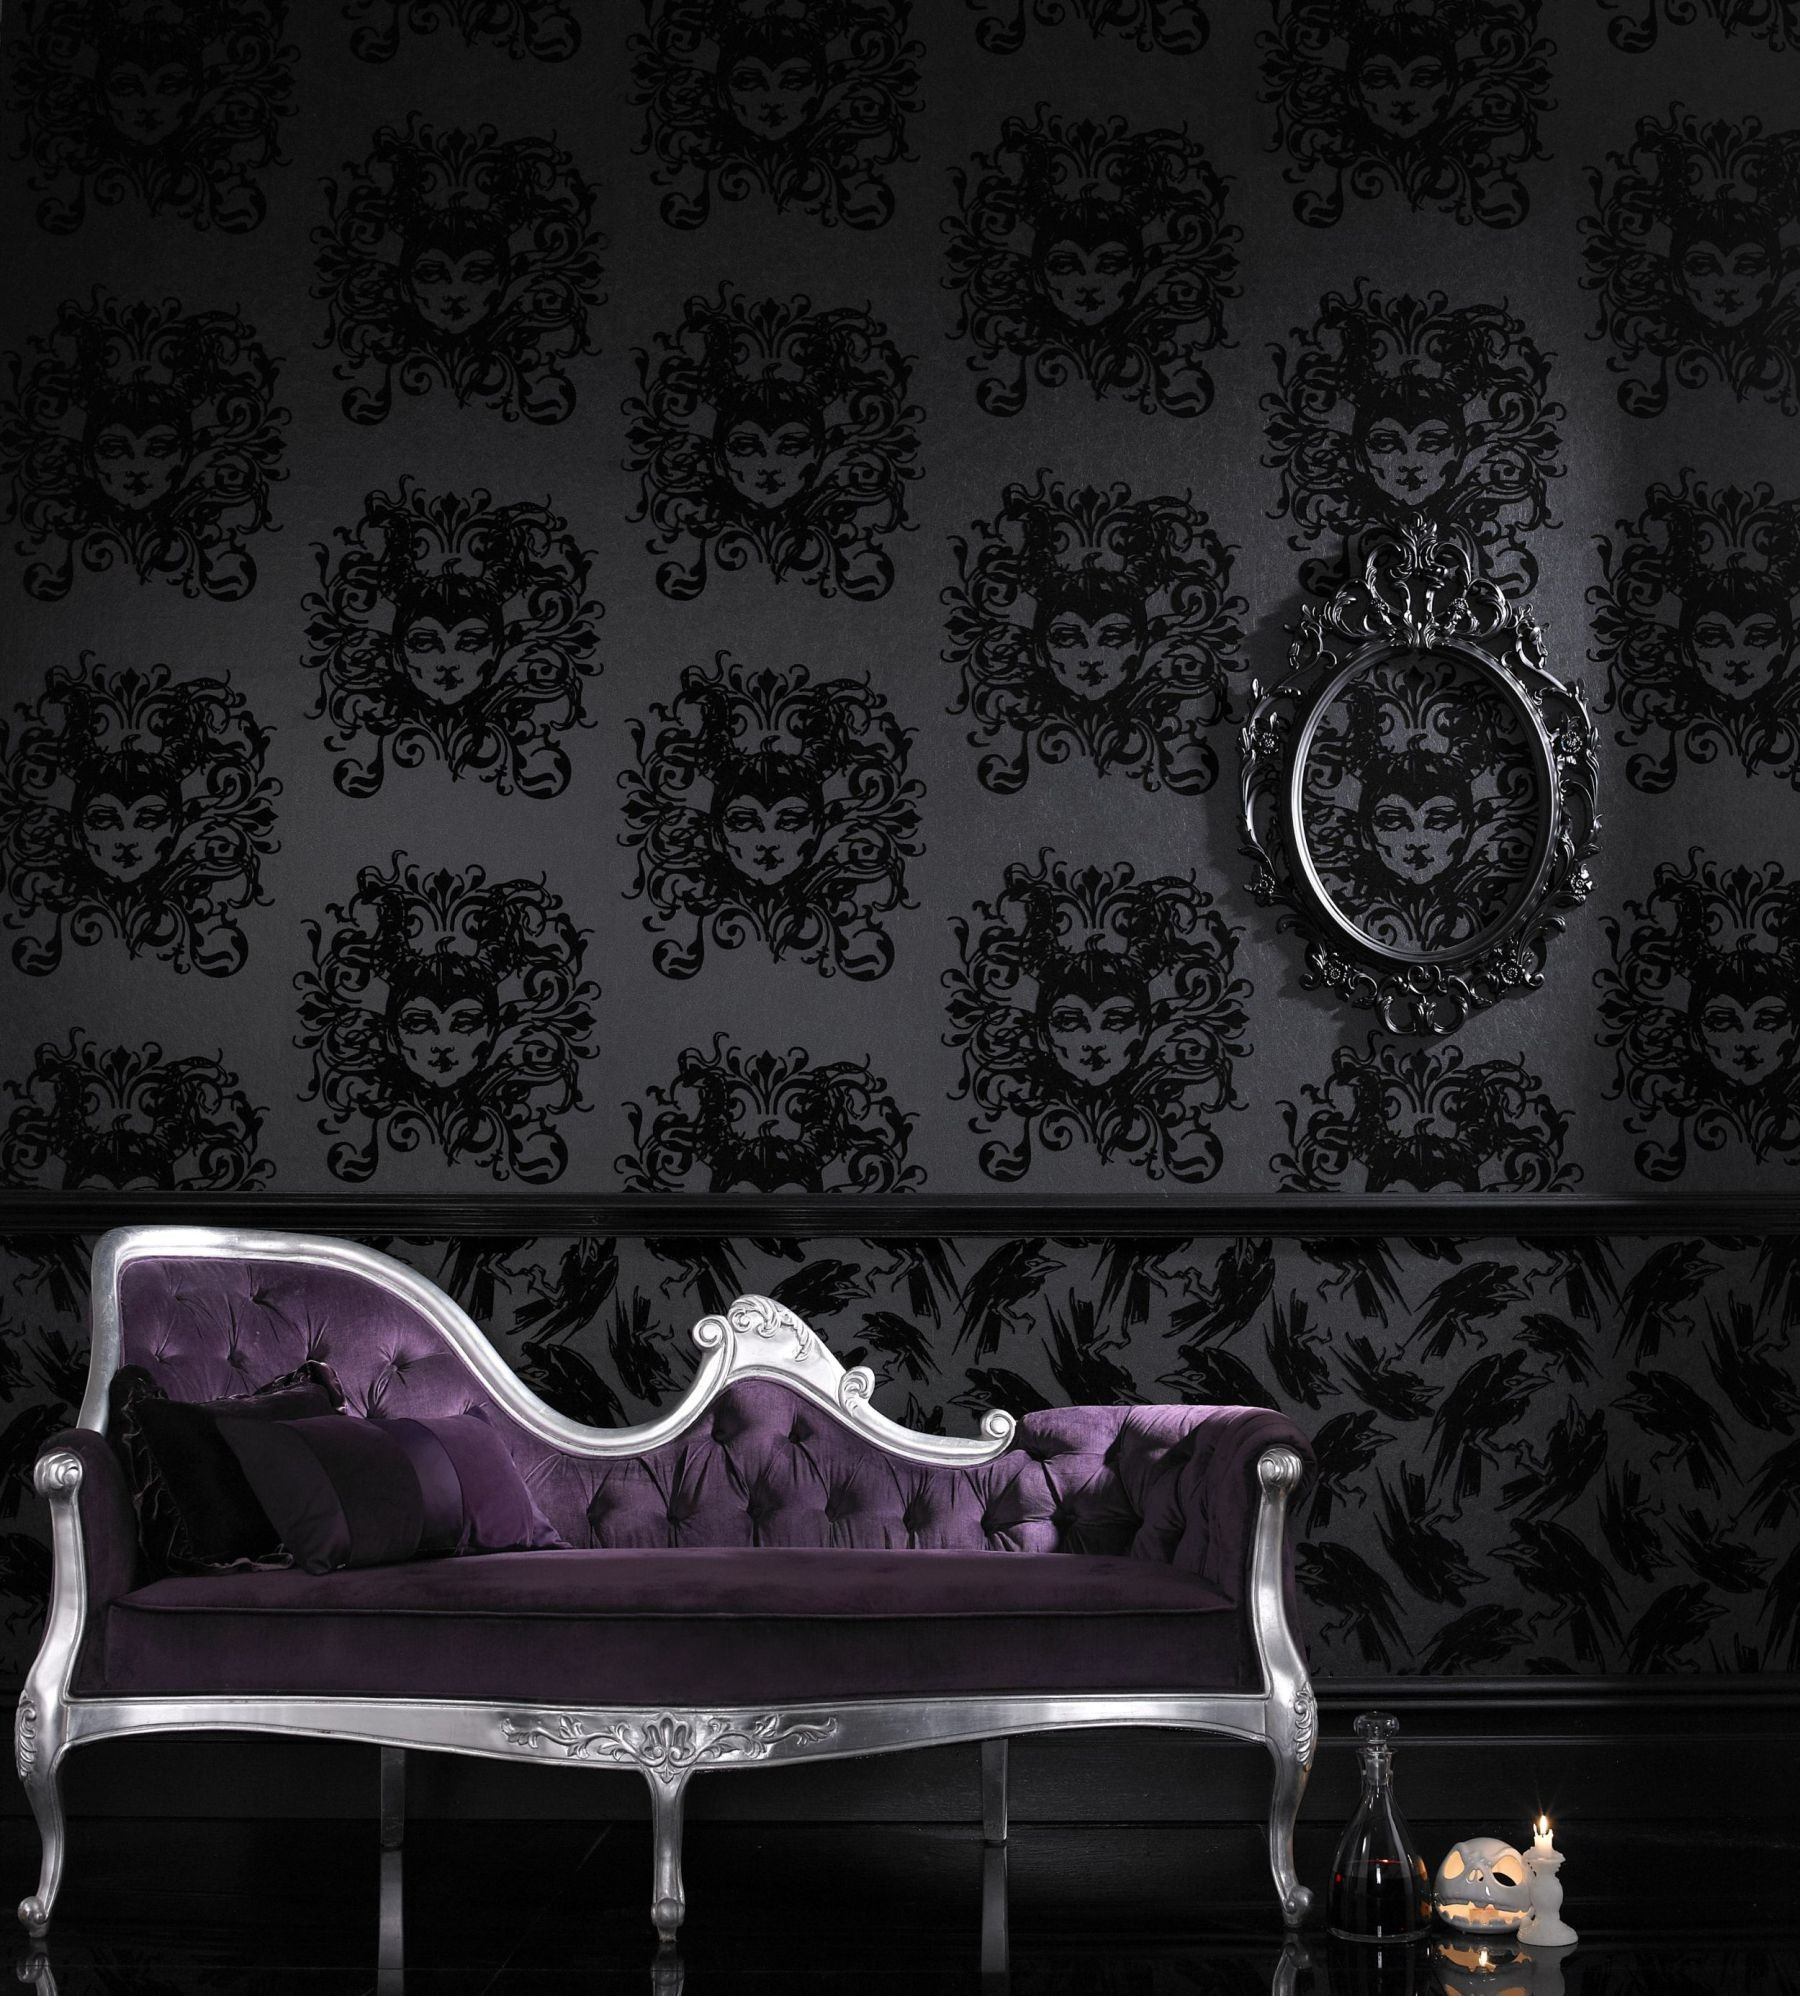 1800x1996 Astonishing Gothic Wallpaper For Walls 96 About Remodel Home Decor Ideas  With Gothic Wallpaper For Walls